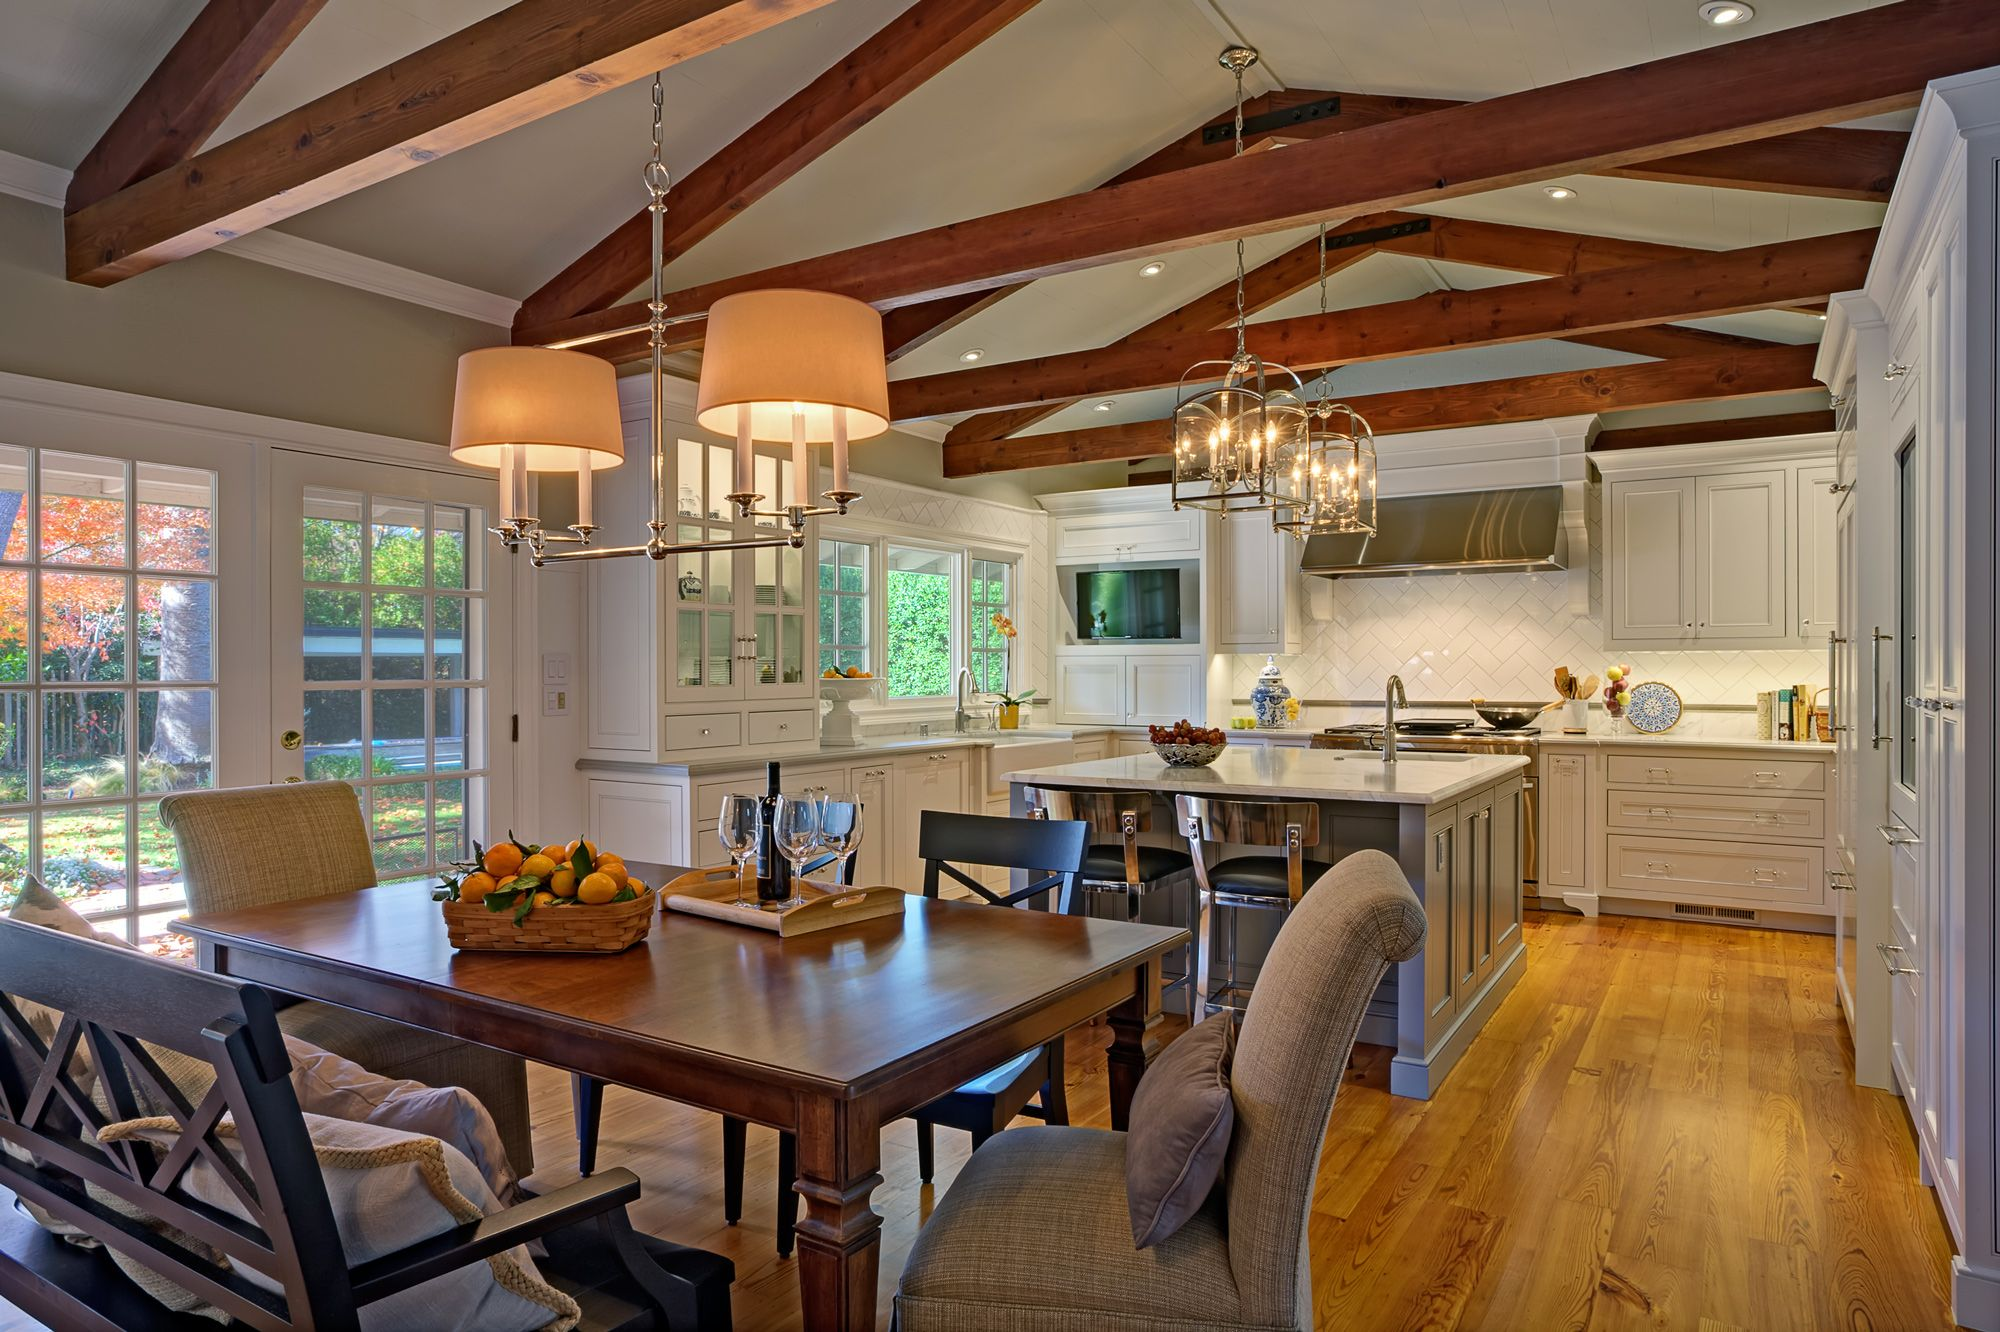 This completely remodeled kitchen and casual dining area replaced a small dark kitchen and separate eating area circa 1975. We were able to give the clients a light and bright …